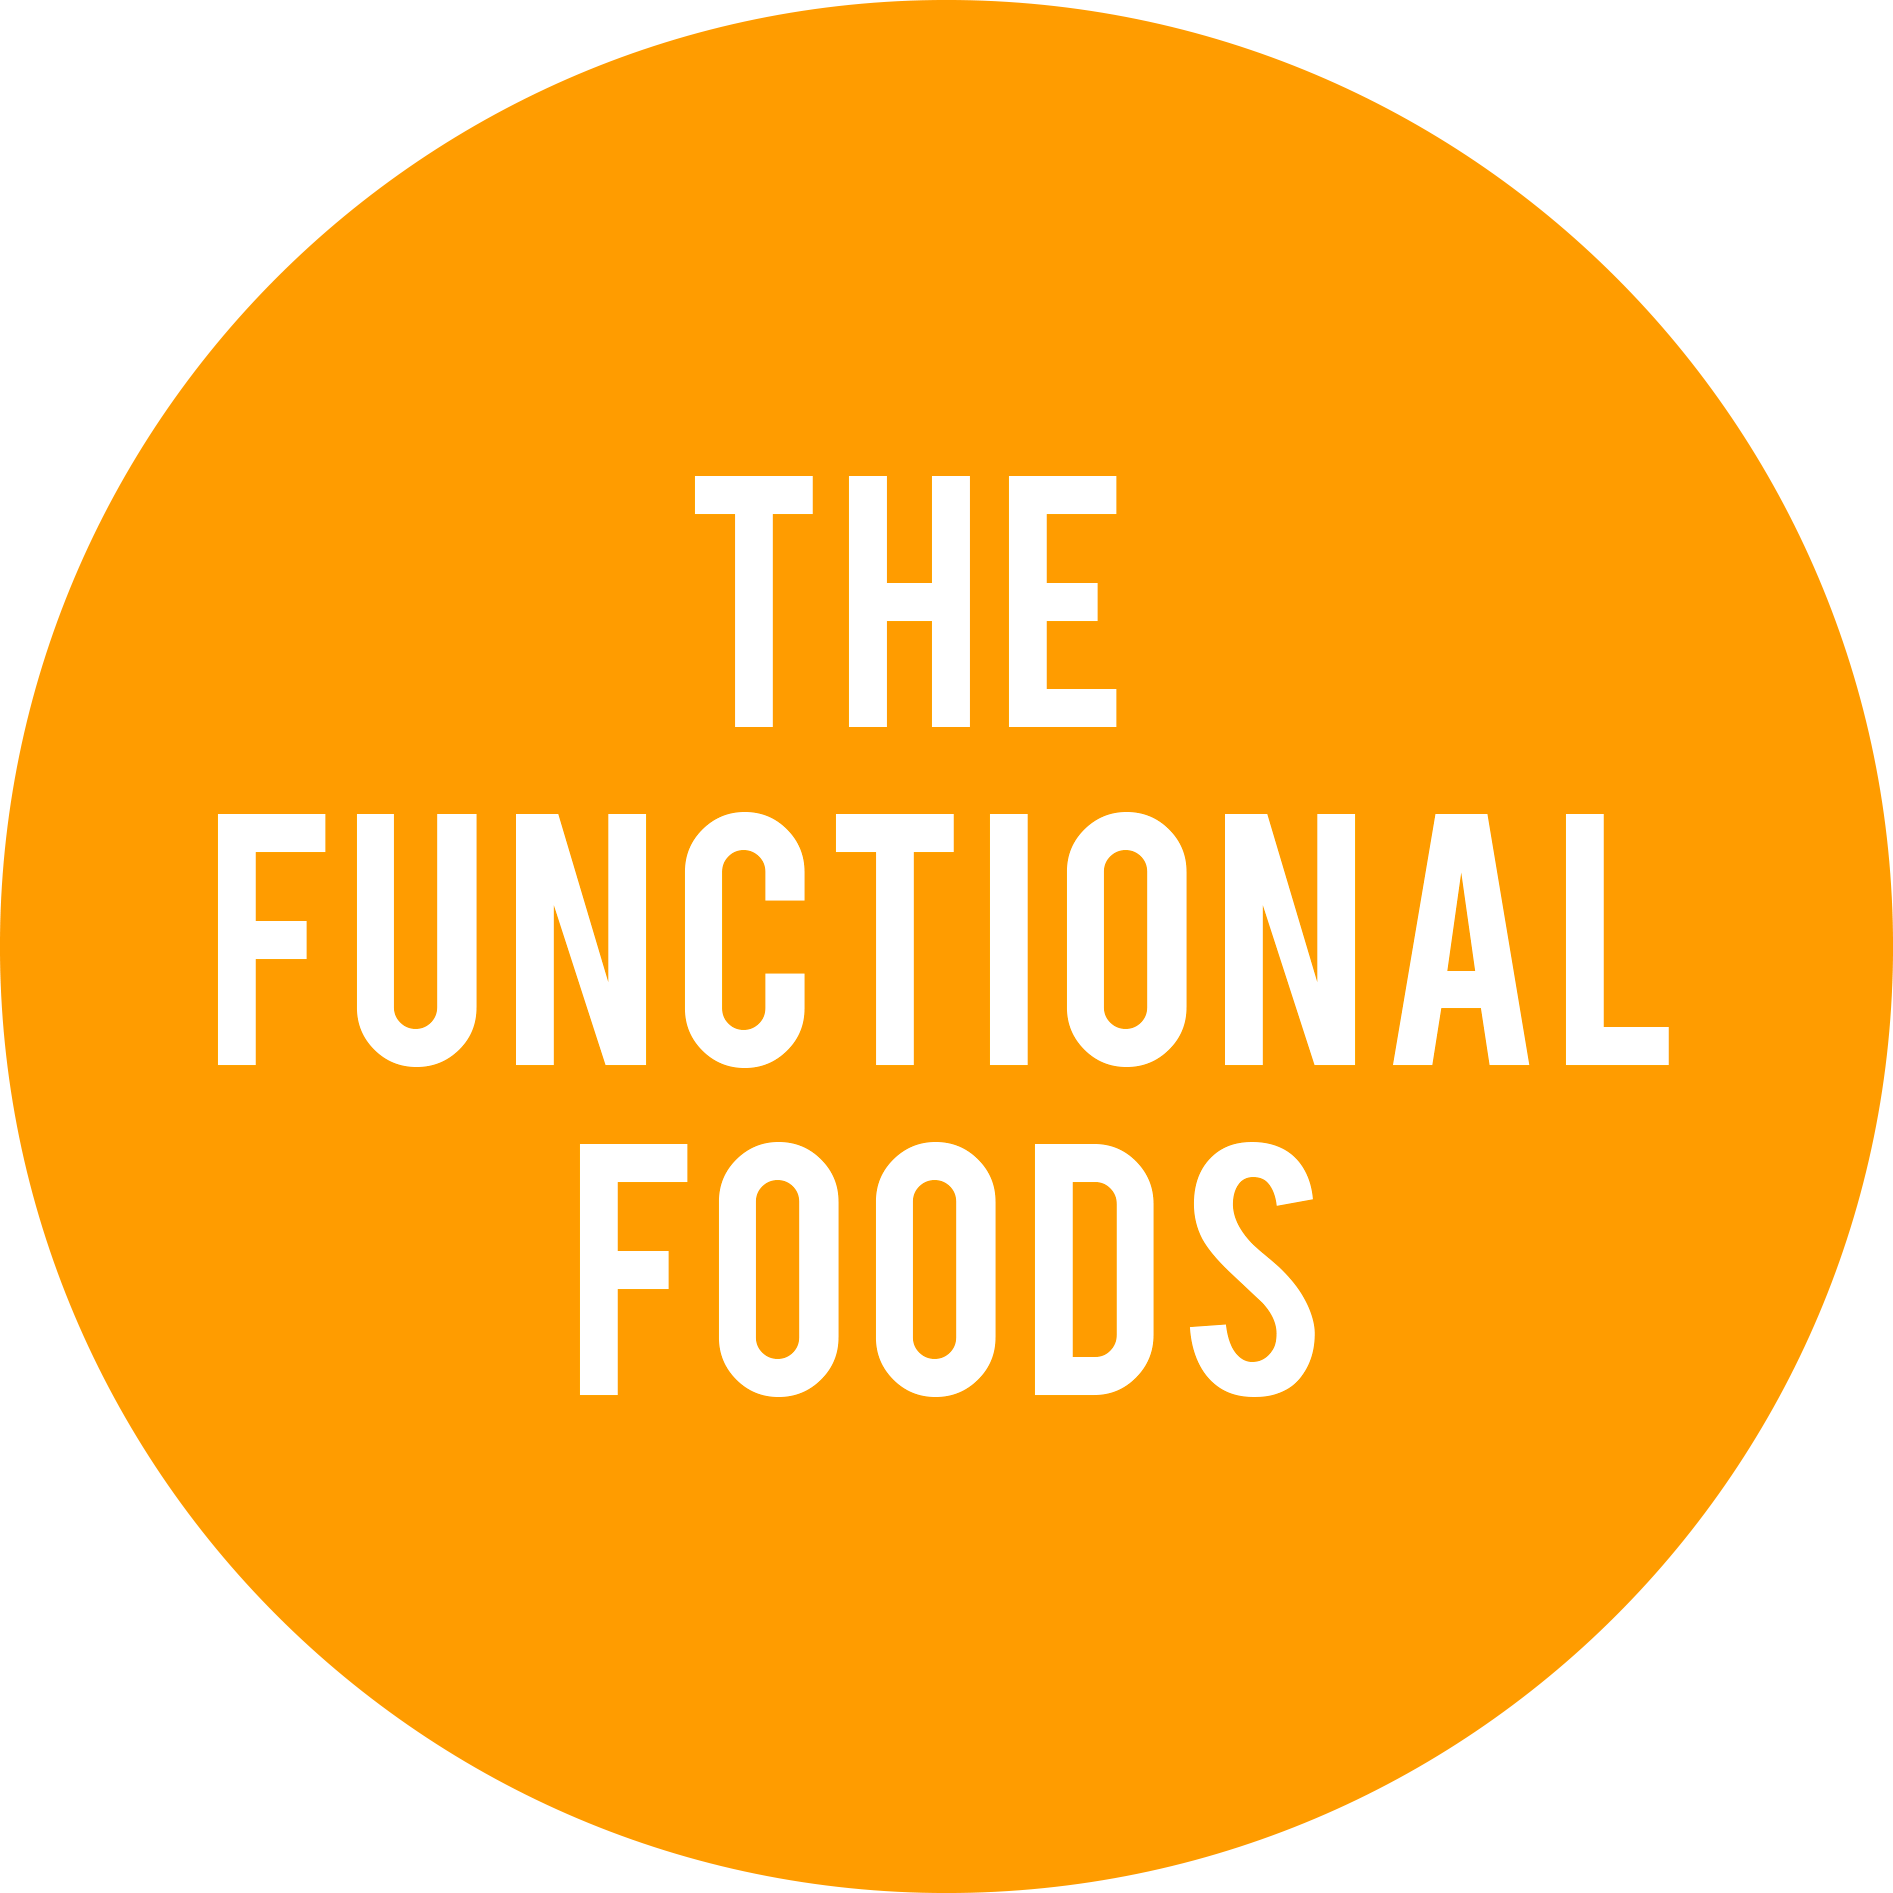 the functional foods logo